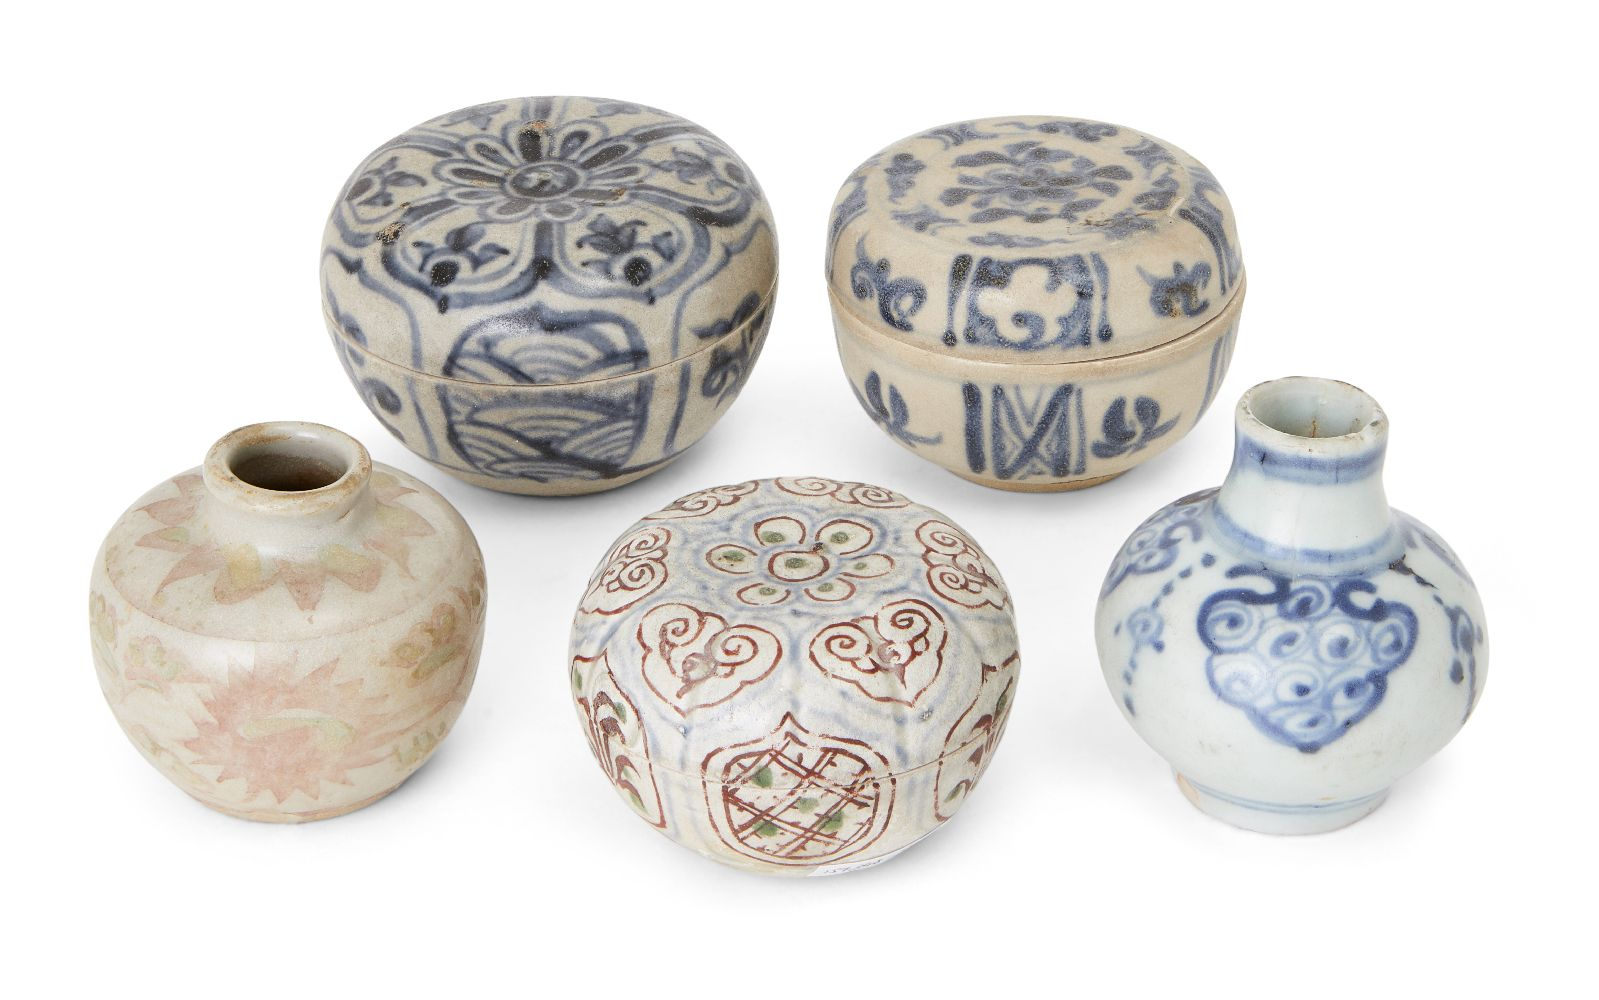 Five pieces of Chinese and Annamese porcelain, 15th/16th century, comprising a blue and white